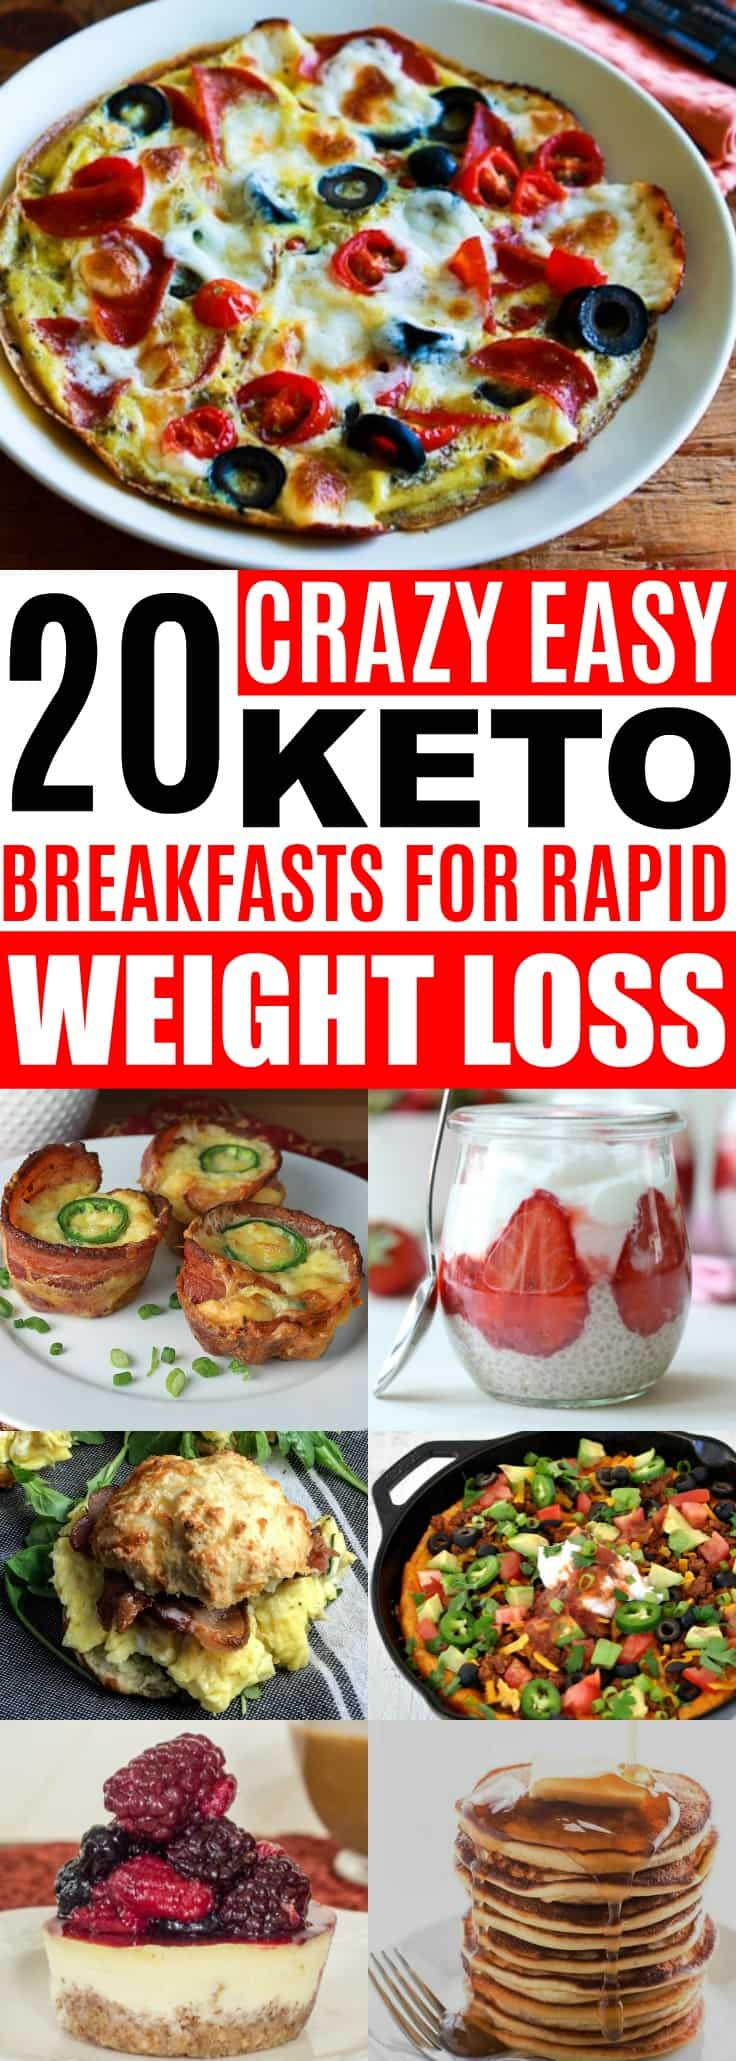 Keto Breakfast Recipes, Ketogenic Recipes